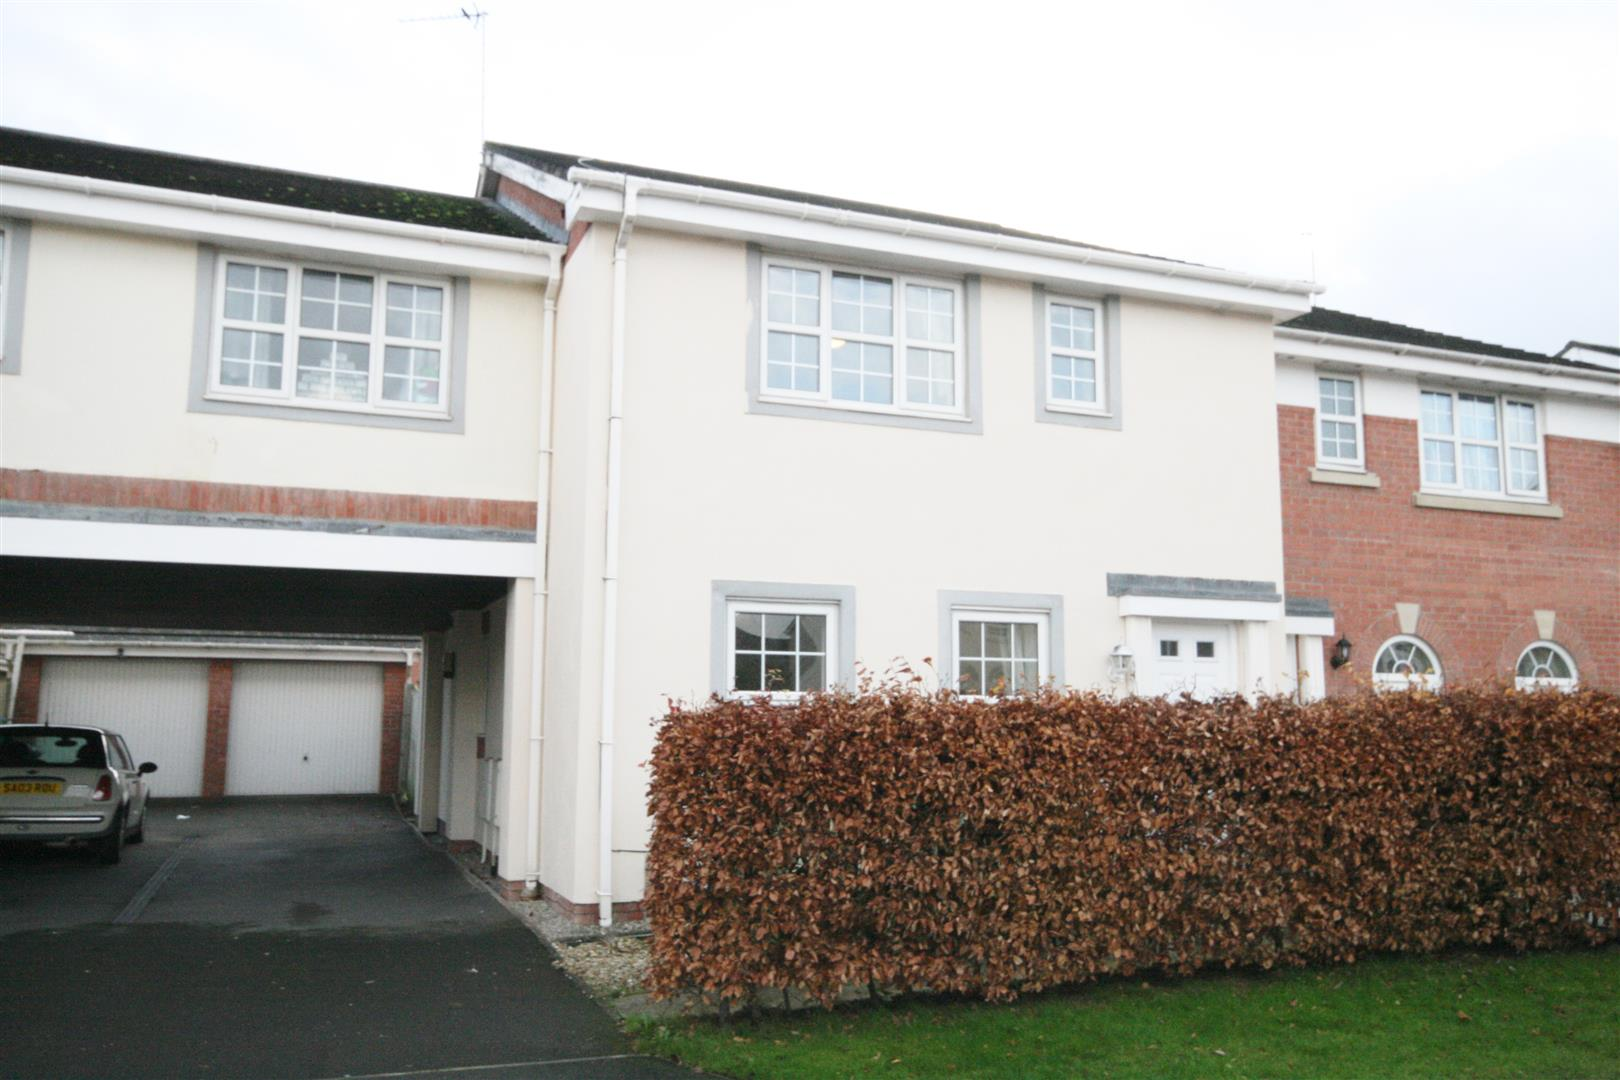 4 Bedrooms Mews House for sale in Millers Close, Lytham St. Annes